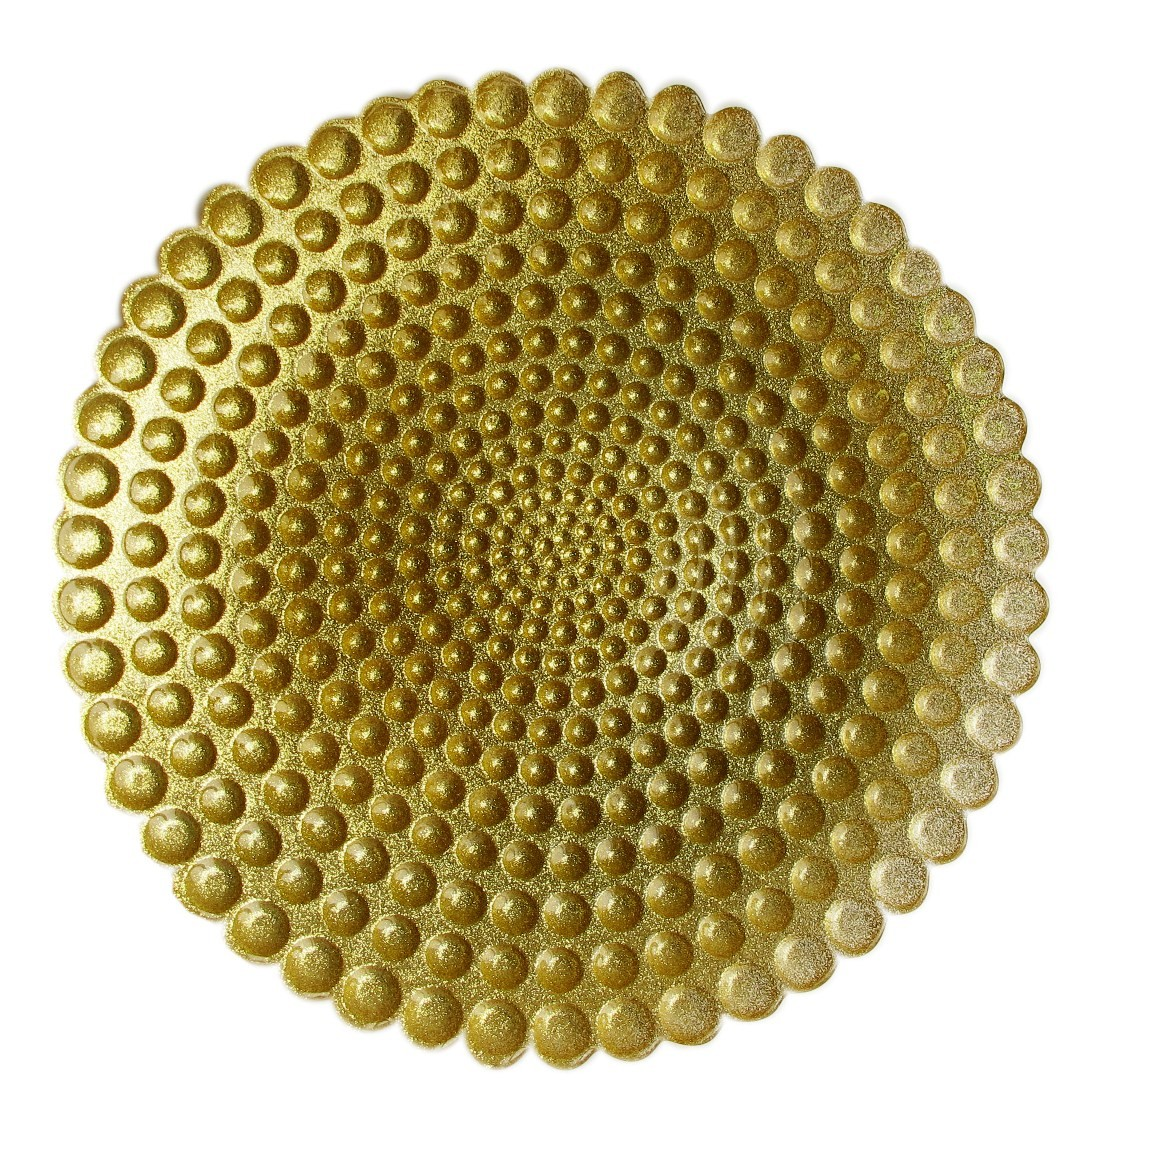 Pearl Charger Plate-Gold 12.5